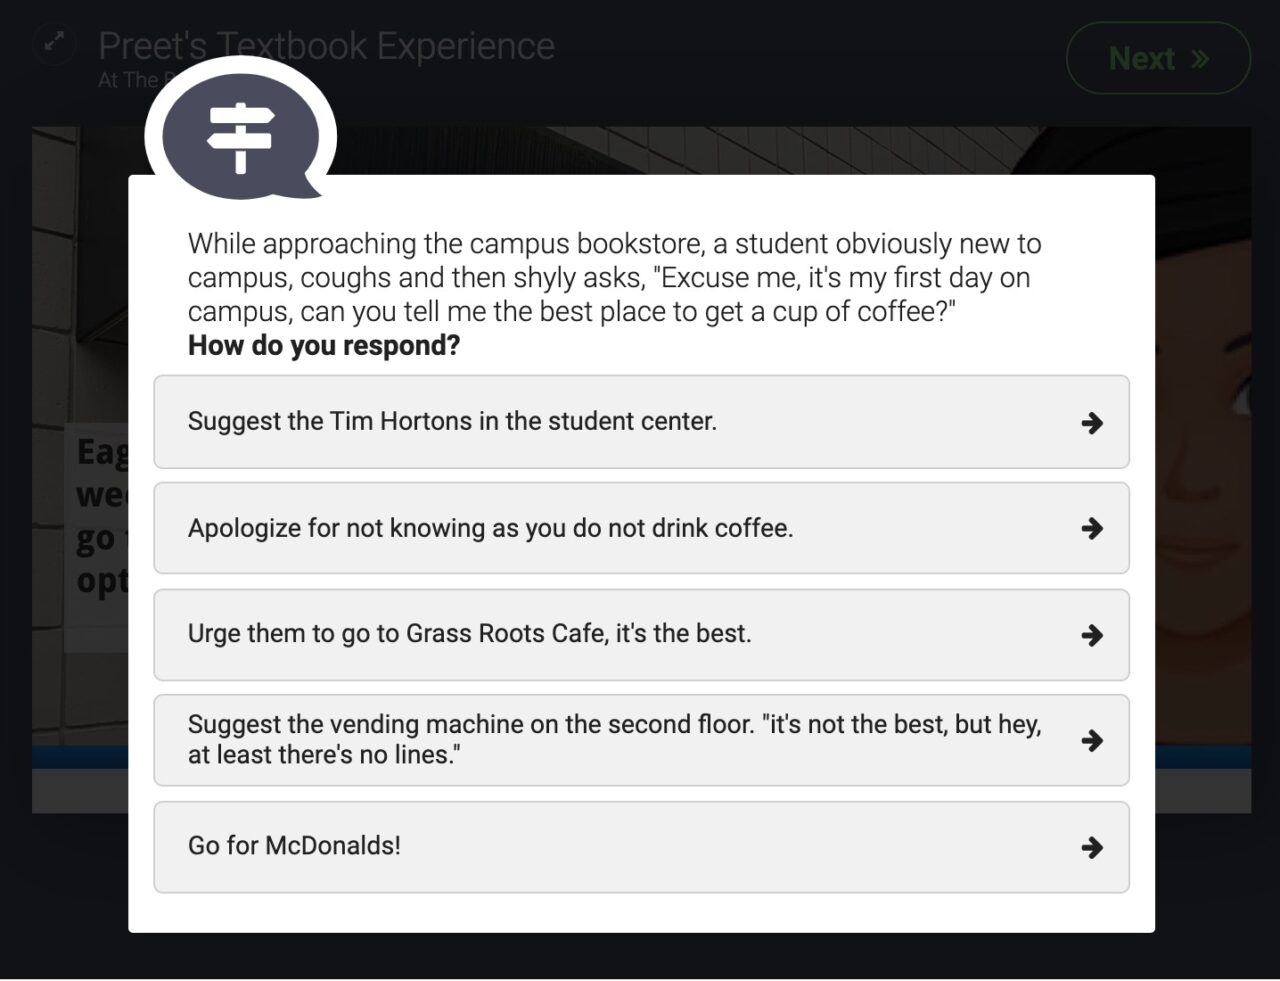 """""""While approaching the campus bookstore, a student obviously new to campus, coughs and then shyly asks, 'Excuse me, it's my first day on campus, can you tell me the best place to get a cup of coffee?' How do you respond?"""" five options include Tim Hortons, brushing them off, suggesting a local cafe. suggest the vending machine, or suggest McDonalds"""